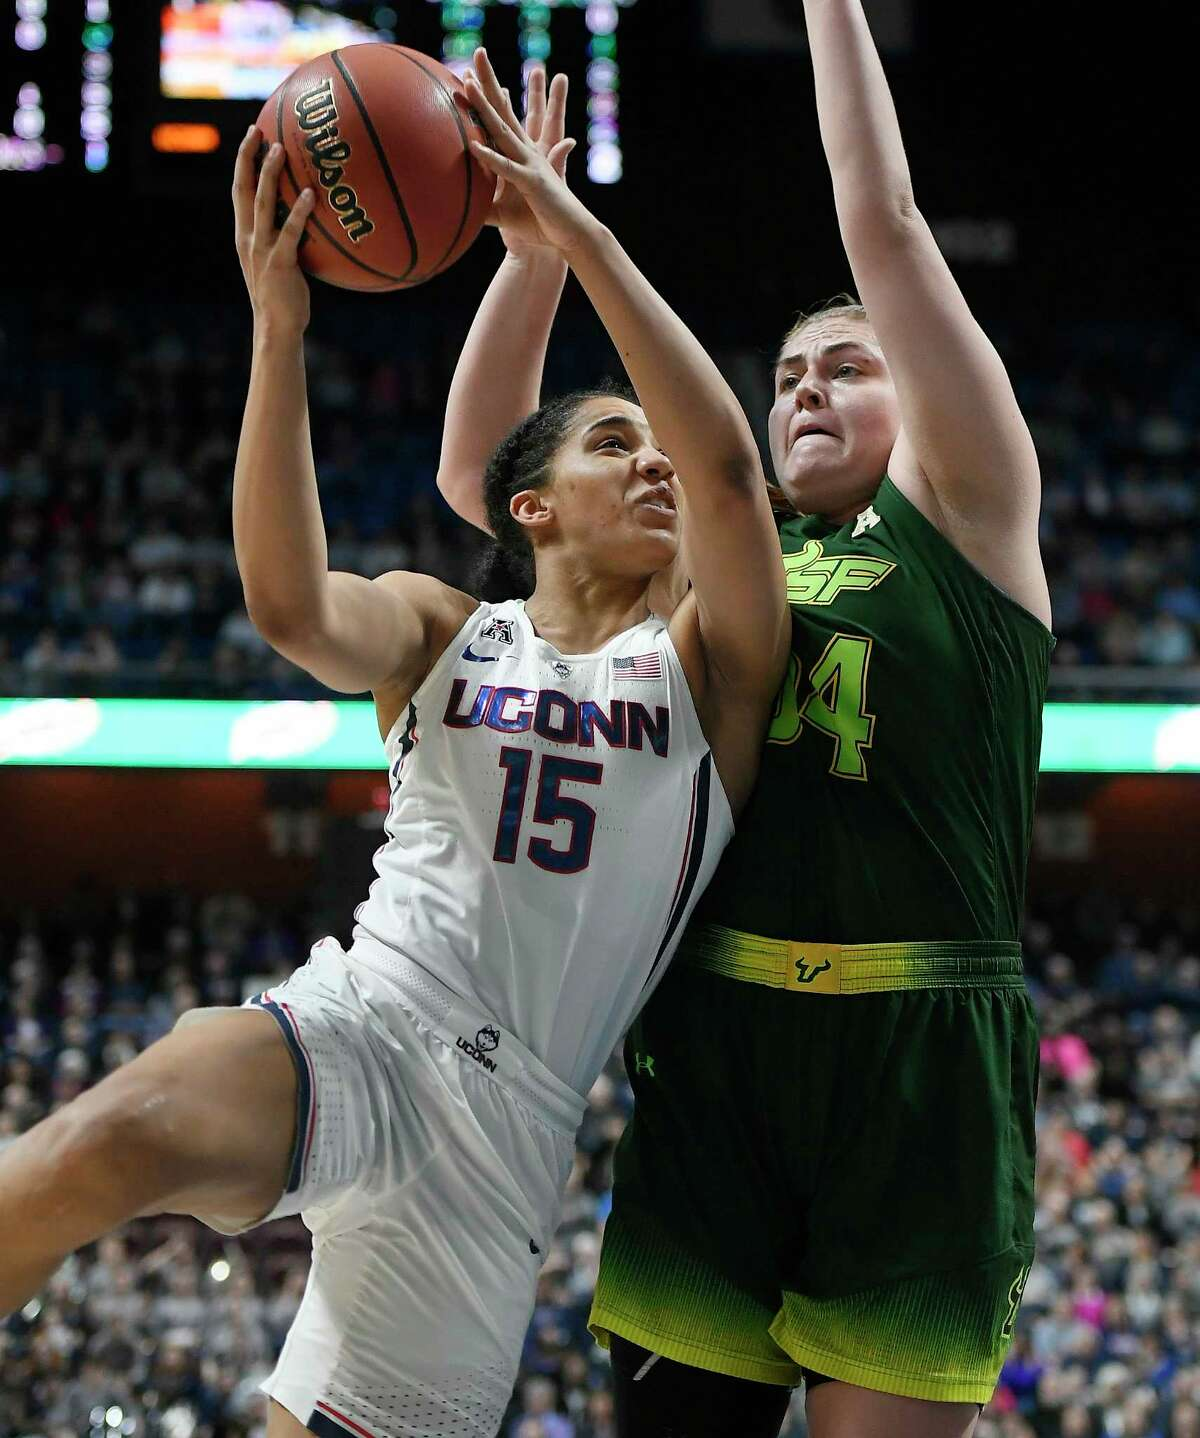 Connecticut's Gabby Williams, left, goes up to the basket as South Florida's Alyssa Rader, right, defends during the first half of an NCAA college basketball game in the American Athletic Conference tournament championship at Mohegan Sun Arena, Tuesday, March 6, 2018, in Uncasville, Conn.